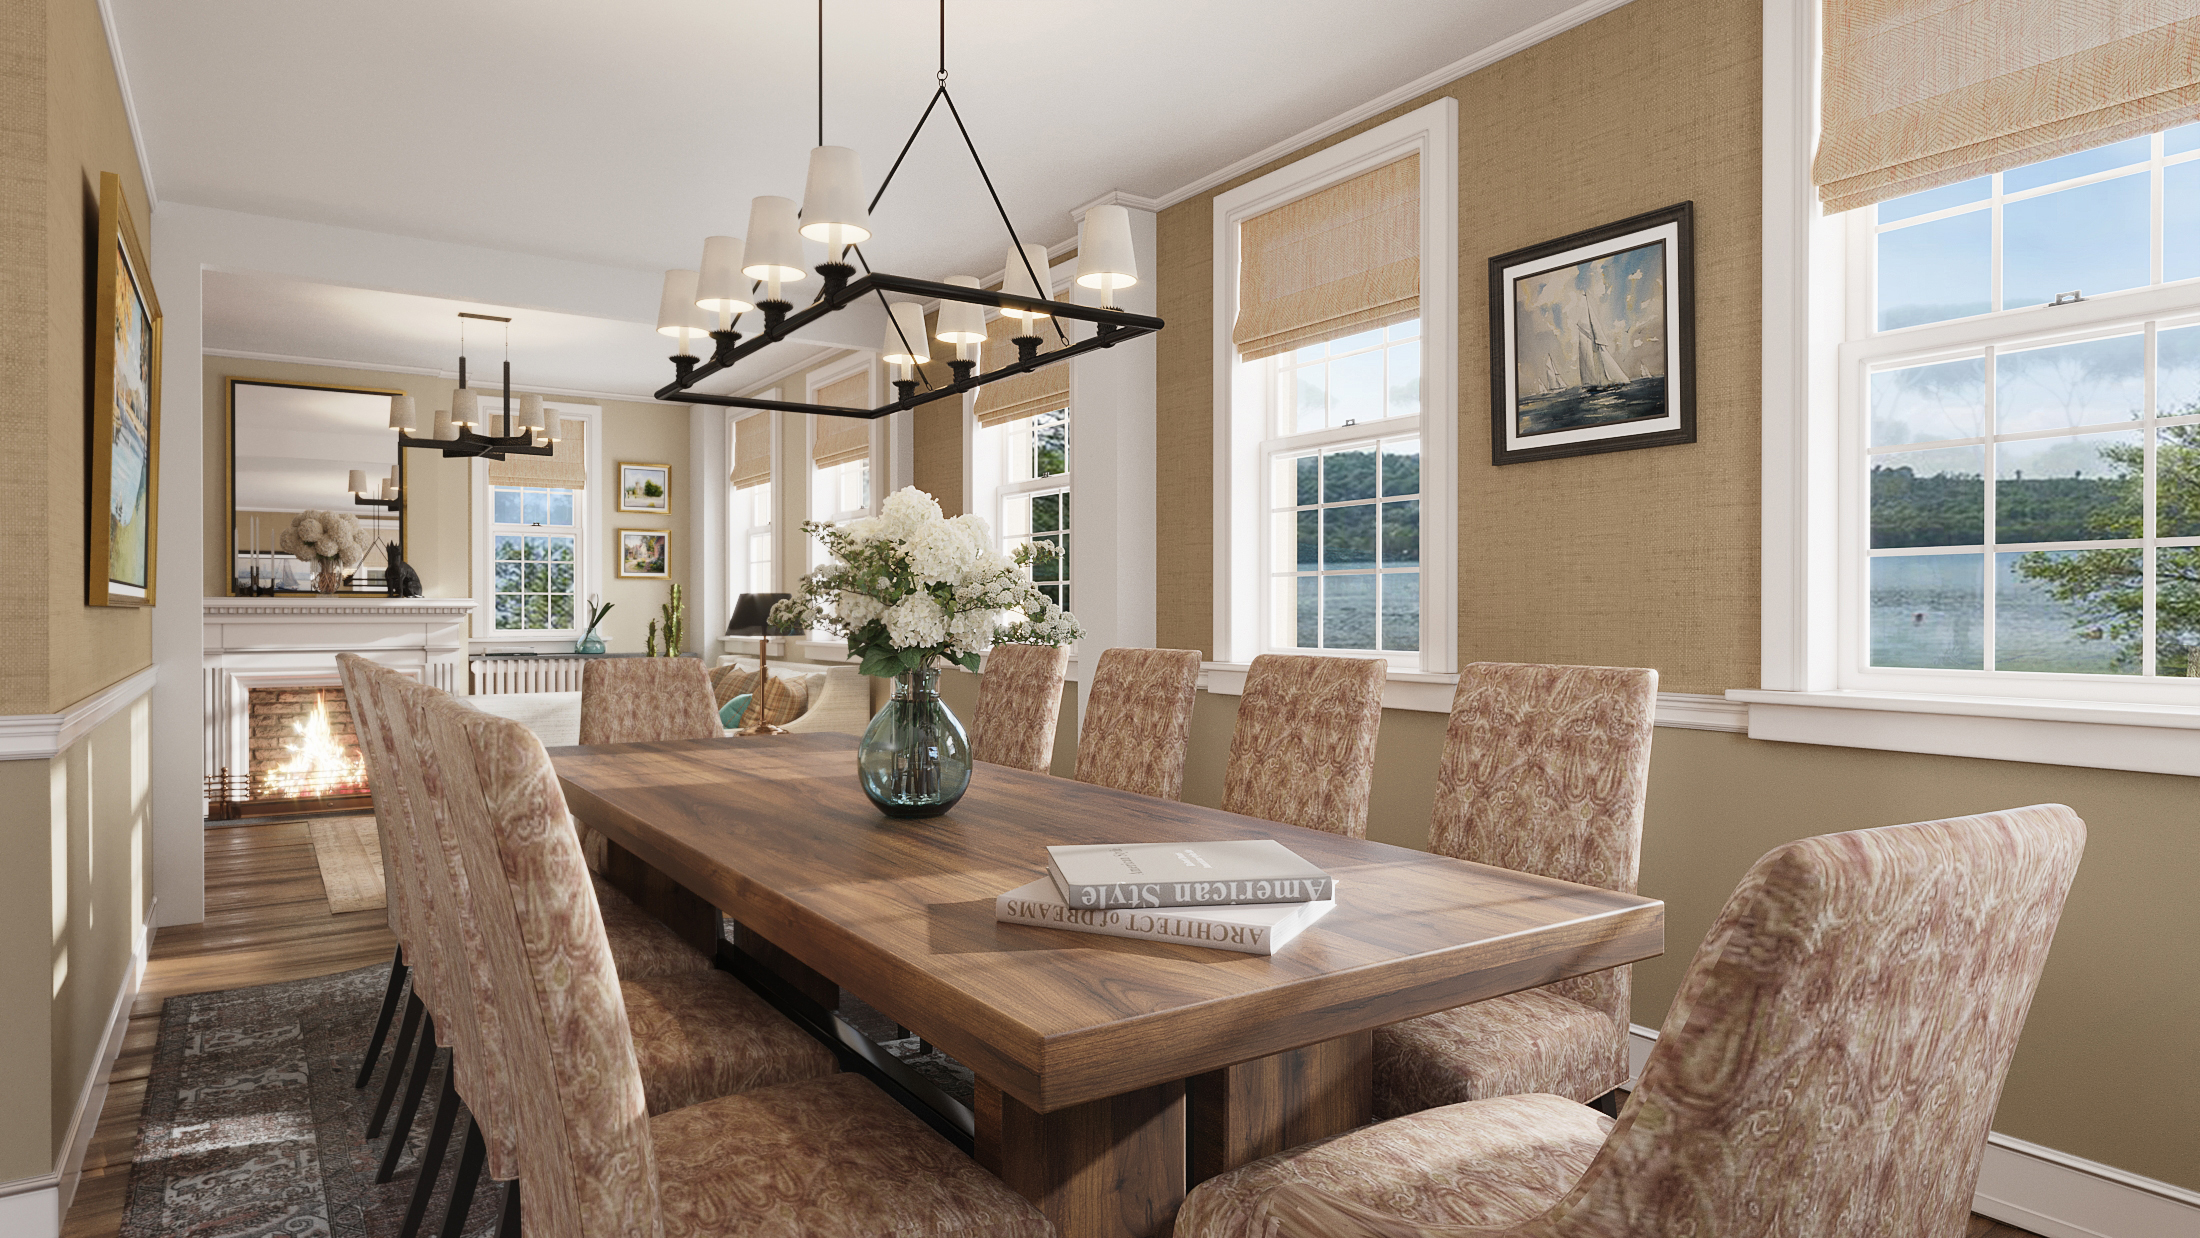 Interior dinning room rendering